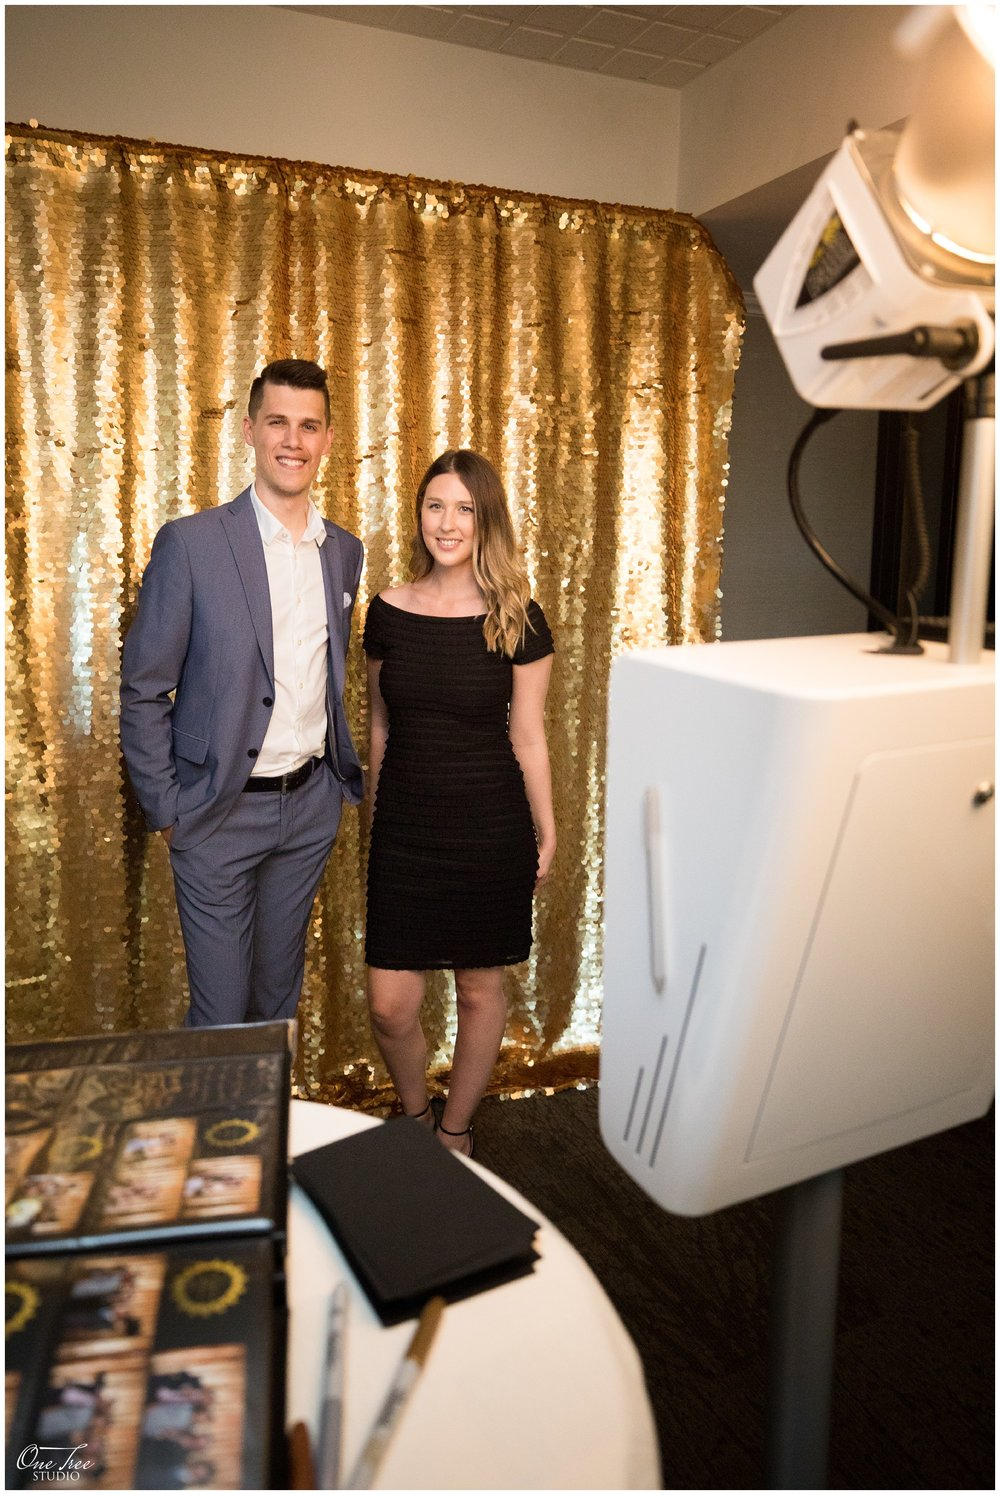 Toronto Luxury Photo Booth